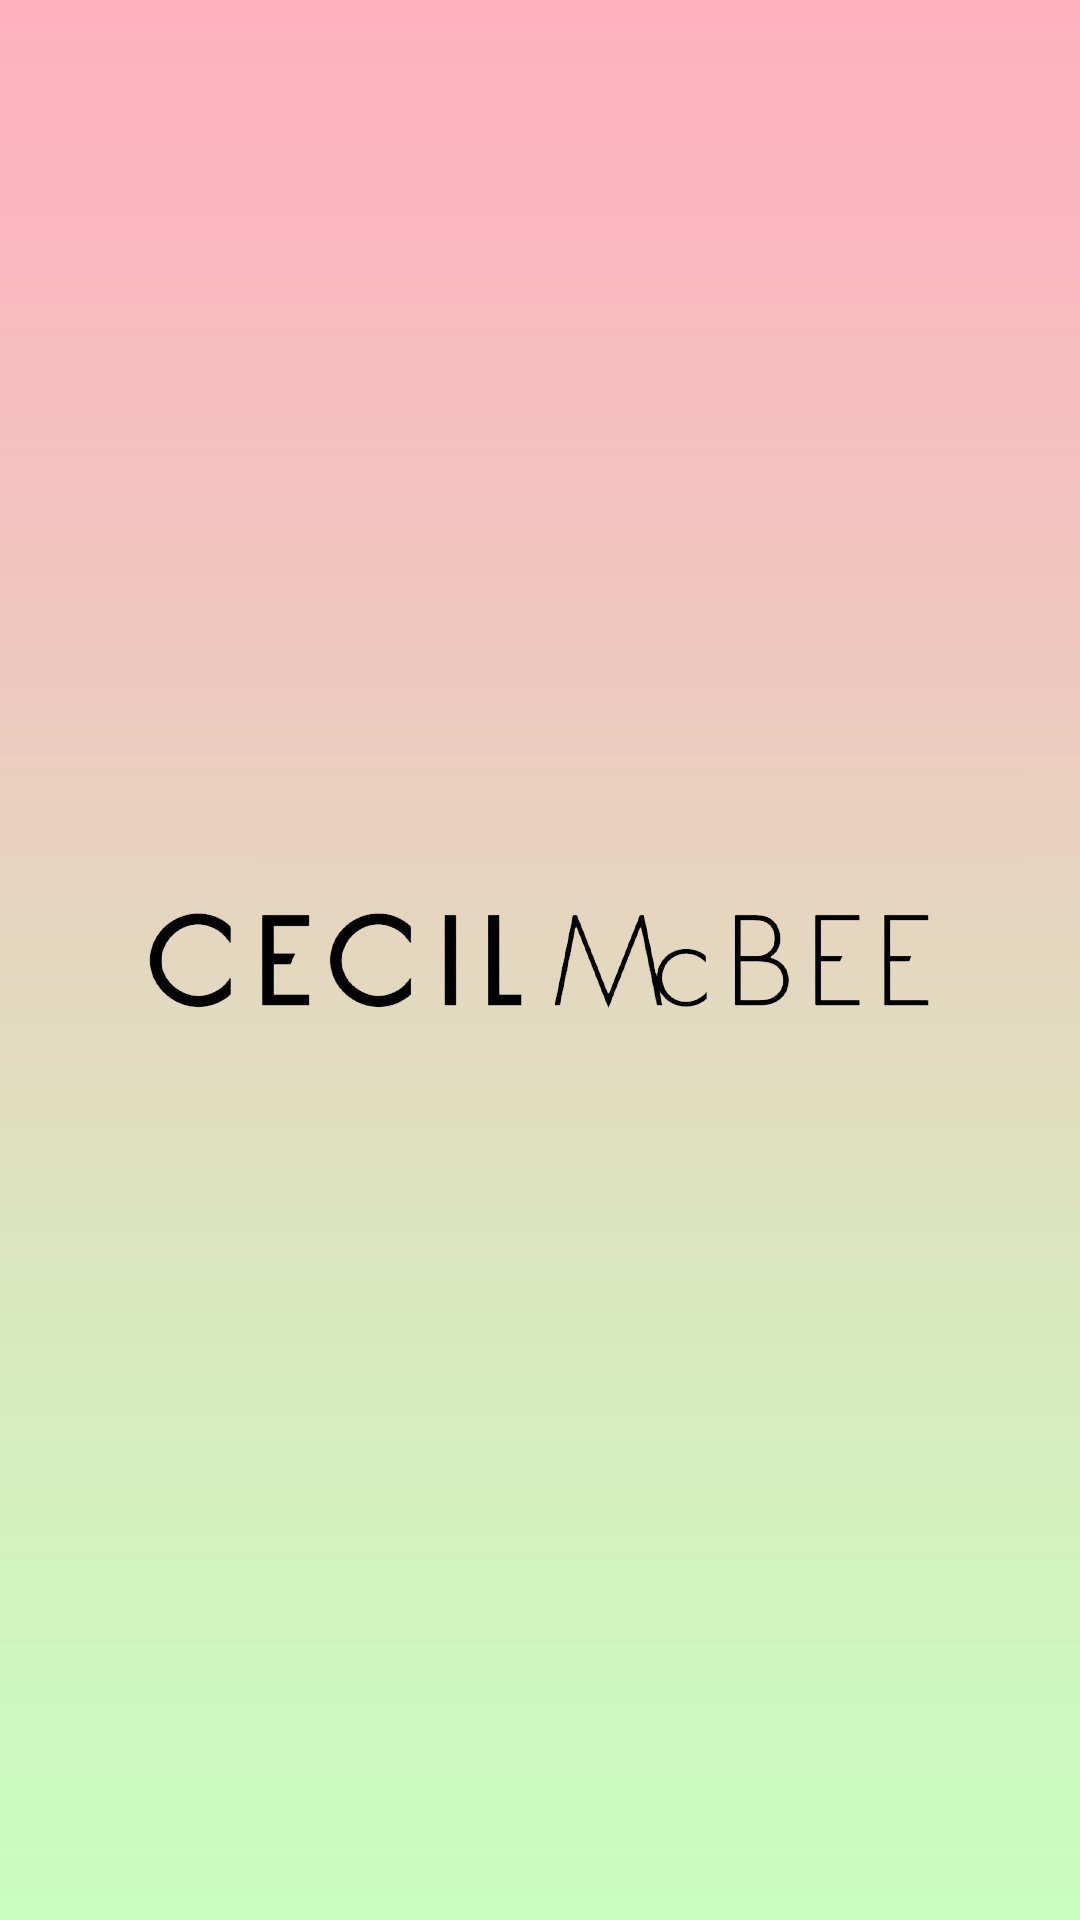 cecil00019 - セシルマクビー[CECIL McBEE]の高画質スマホ壁紙23枚 [iPhone&Androidに対応]